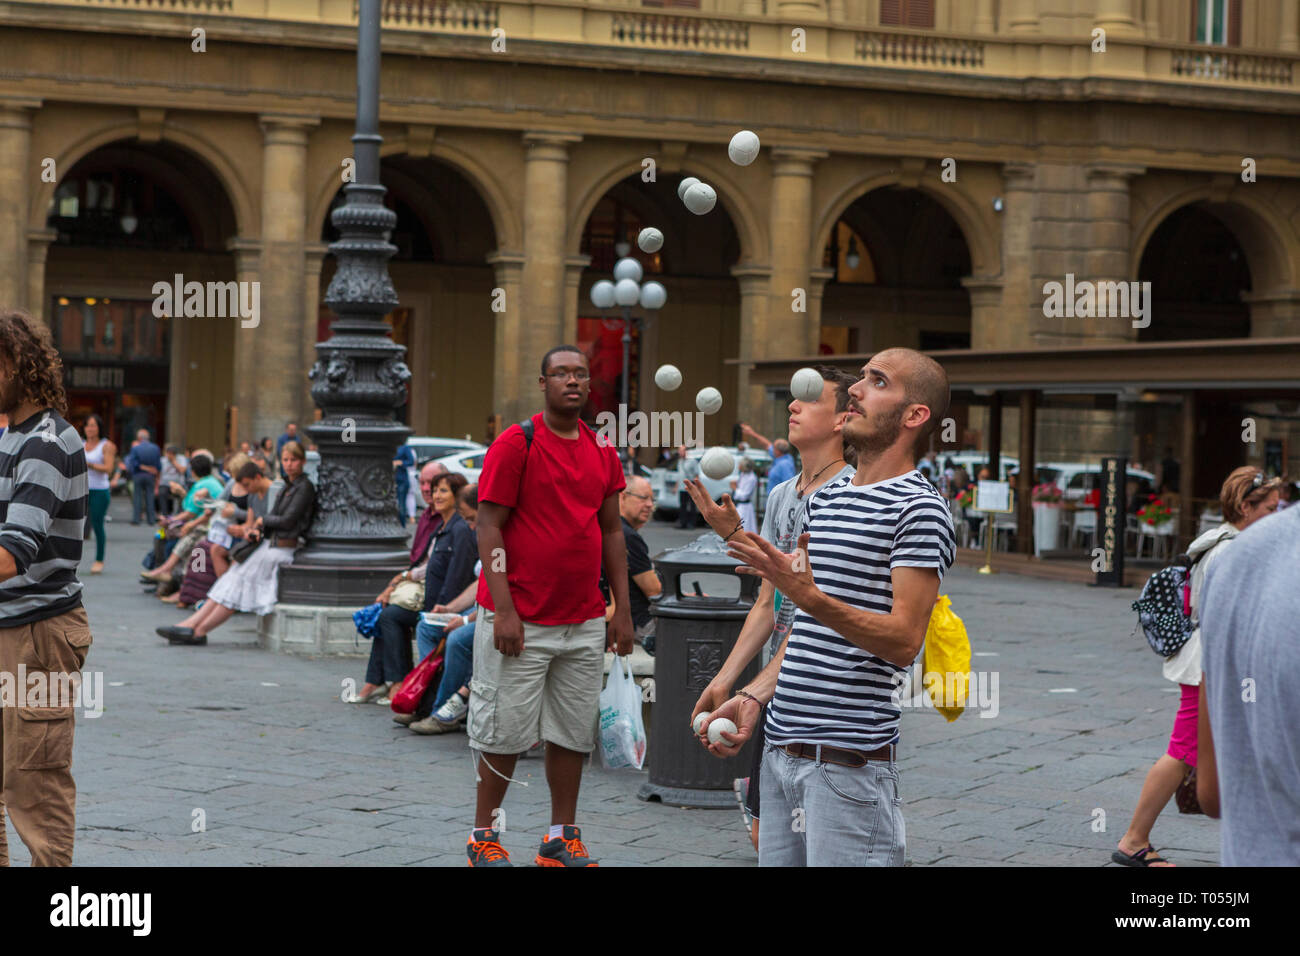 Street performers juggle balls for tourists at the Piazza della Repubblica, Florence, Tuscany, Italy. - Stock Image